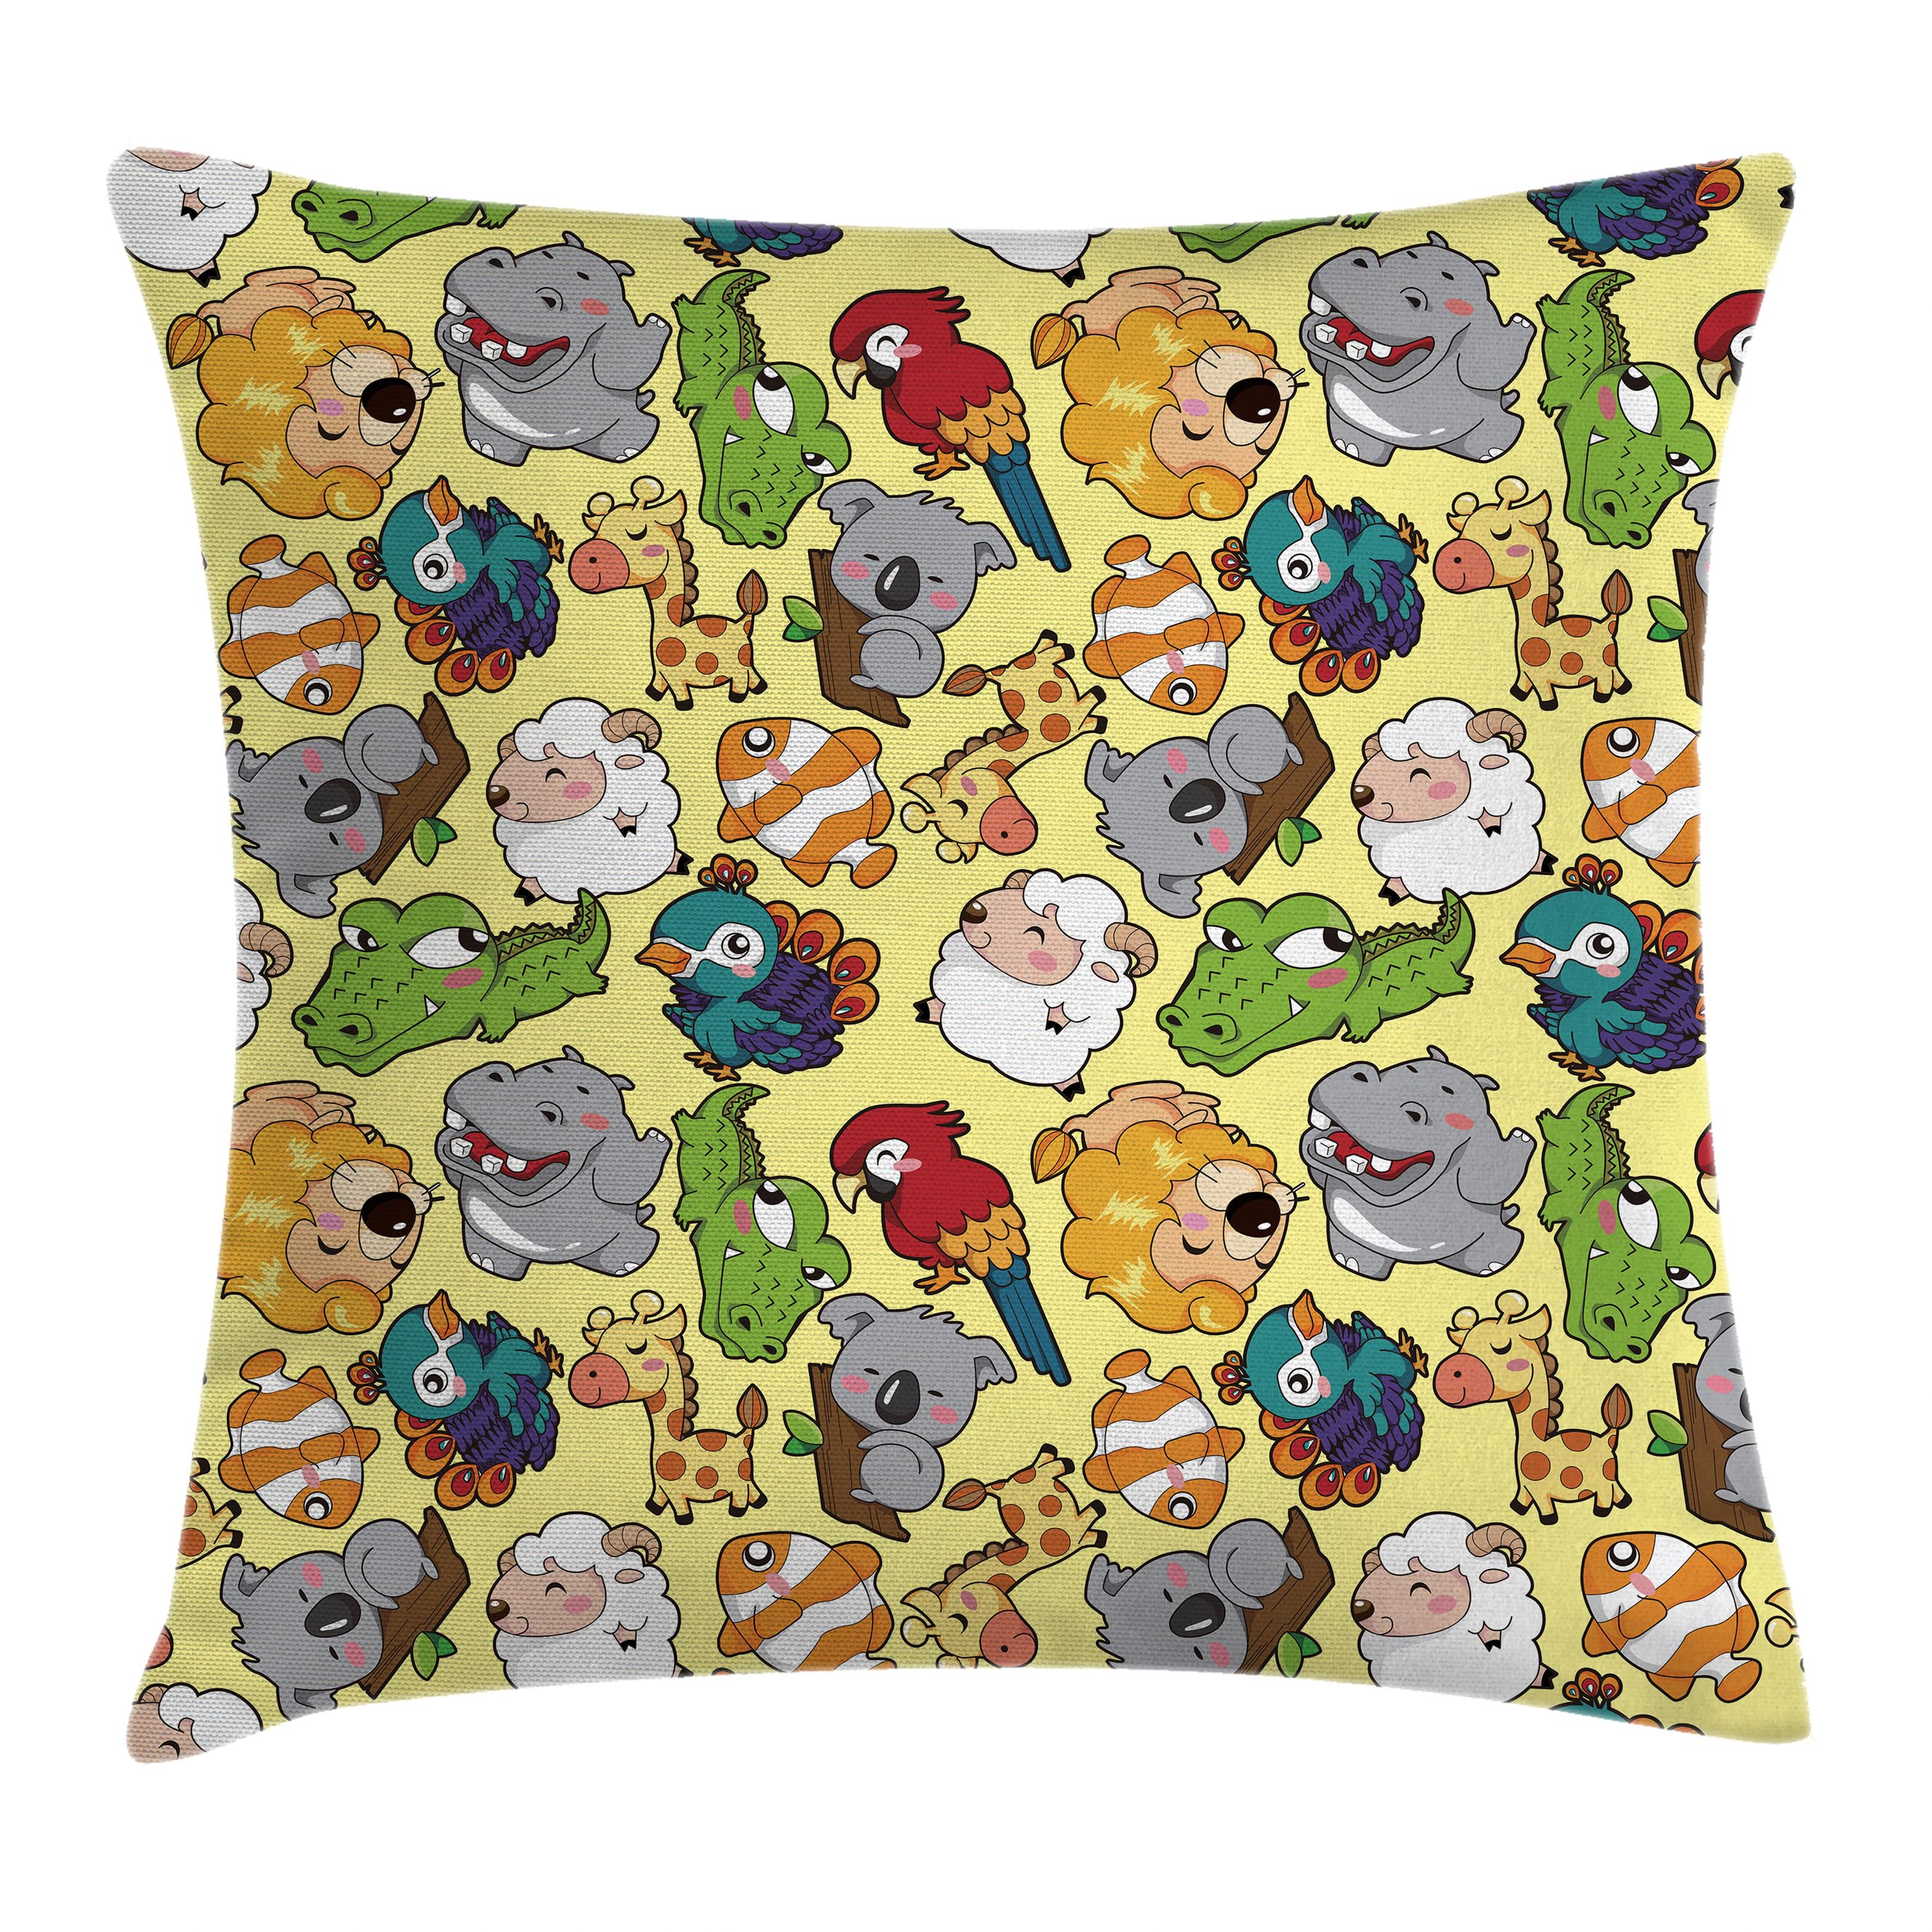 Children Throw Pillow Cushion Cover, Funny Animals Hippo Giraffe Koala Parrot Crocodile Zoo Jungle Kids Nursery Graphic, Decorative Square Accent Pillow Case, 16 X 16 Inches, Multicolor, by Ambesonne